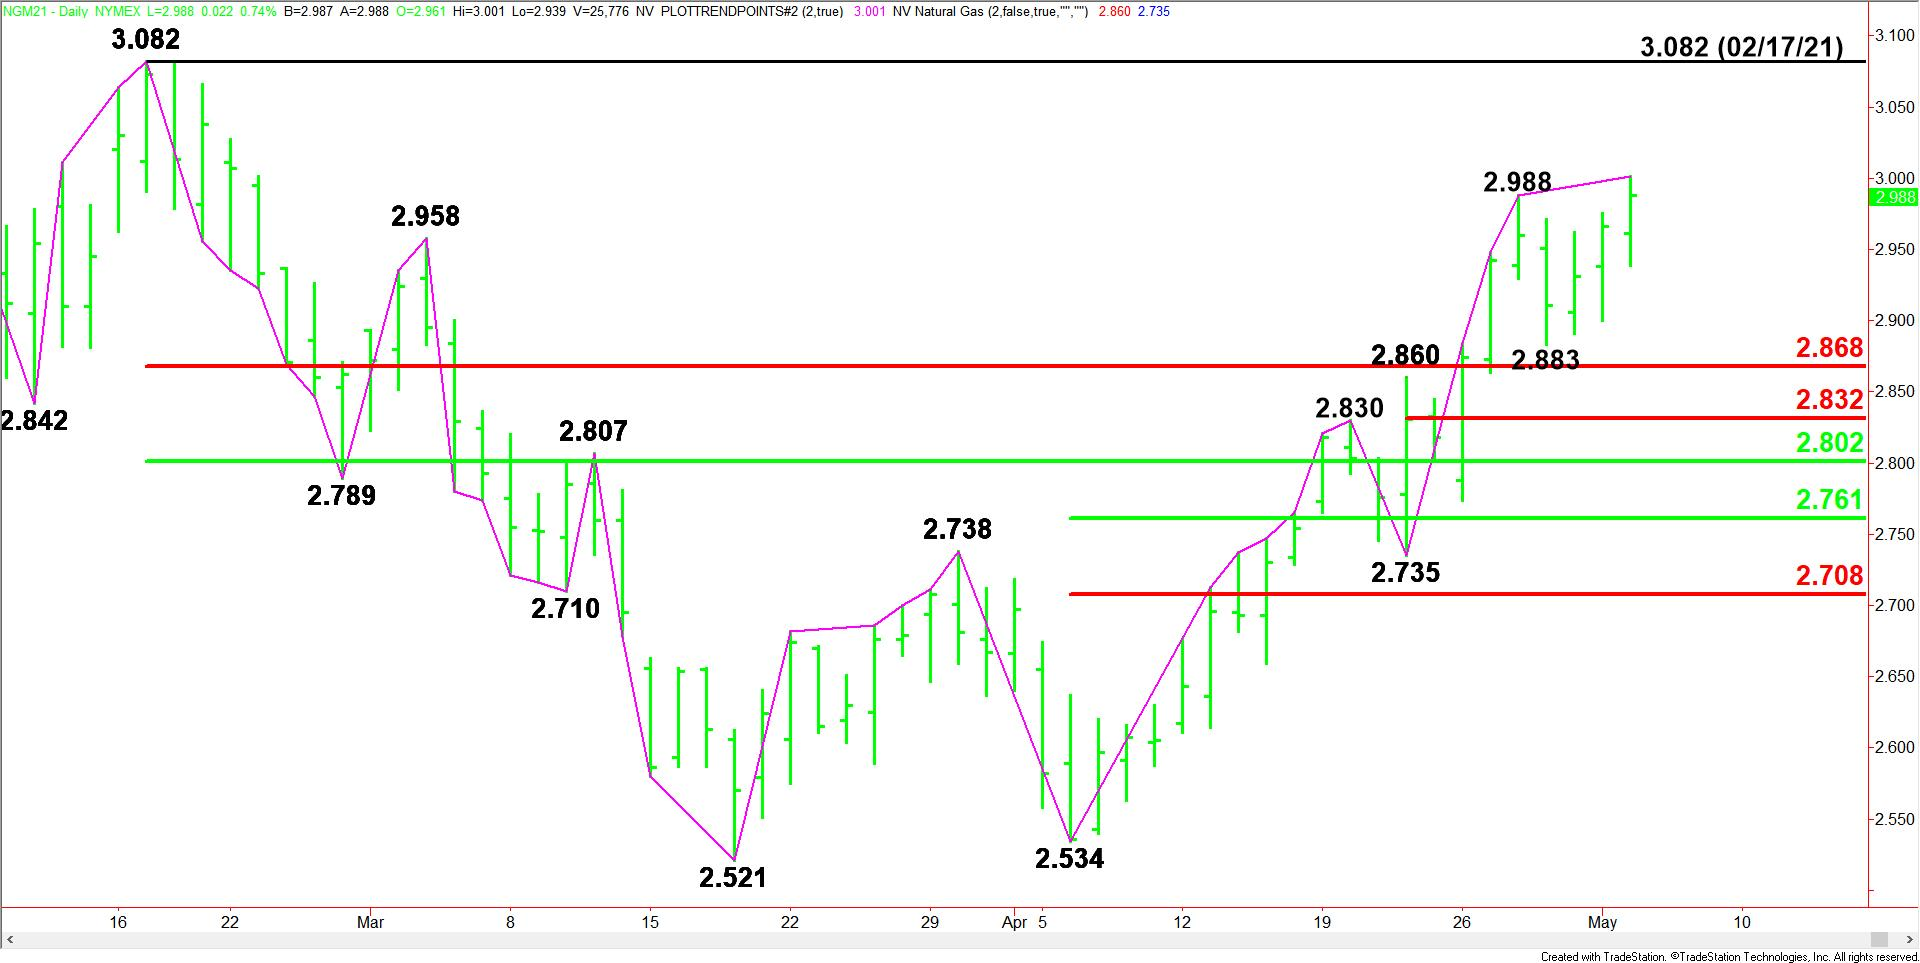 Daily June Natural Gas